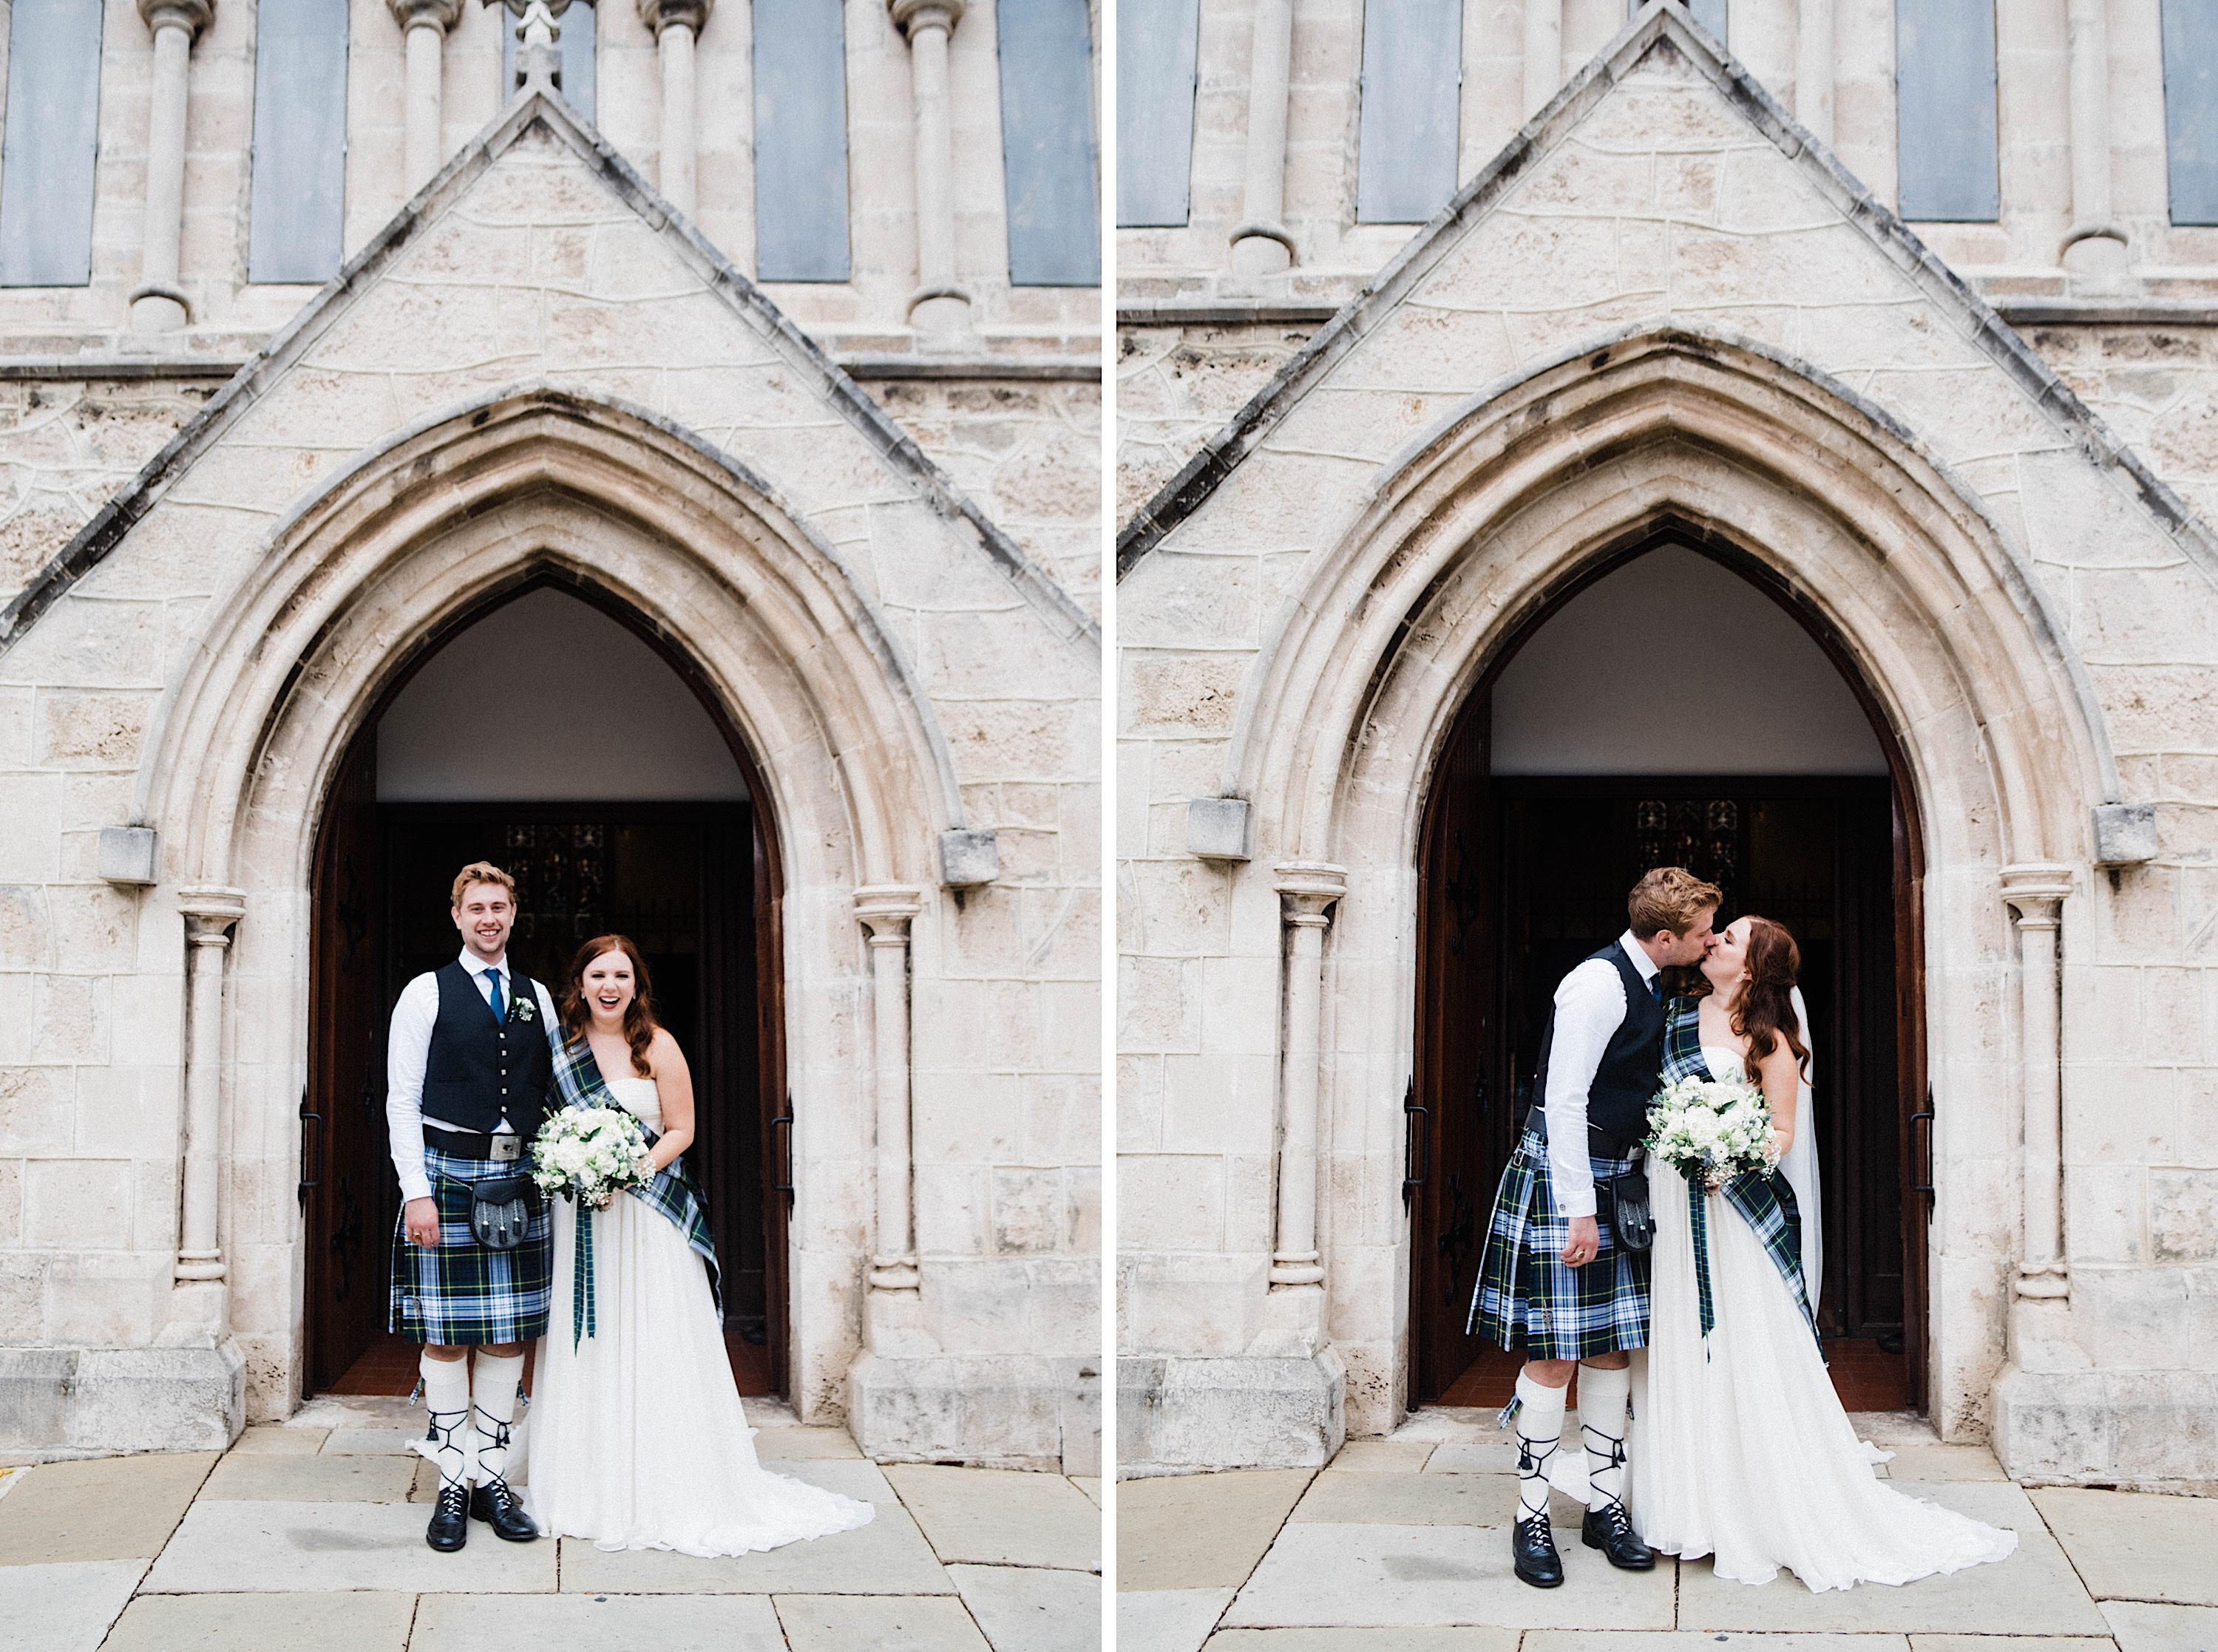 Two side-by-side wedding portraits of the bride & groom standing together outside St John's Anglican Church at the end of their wedding.